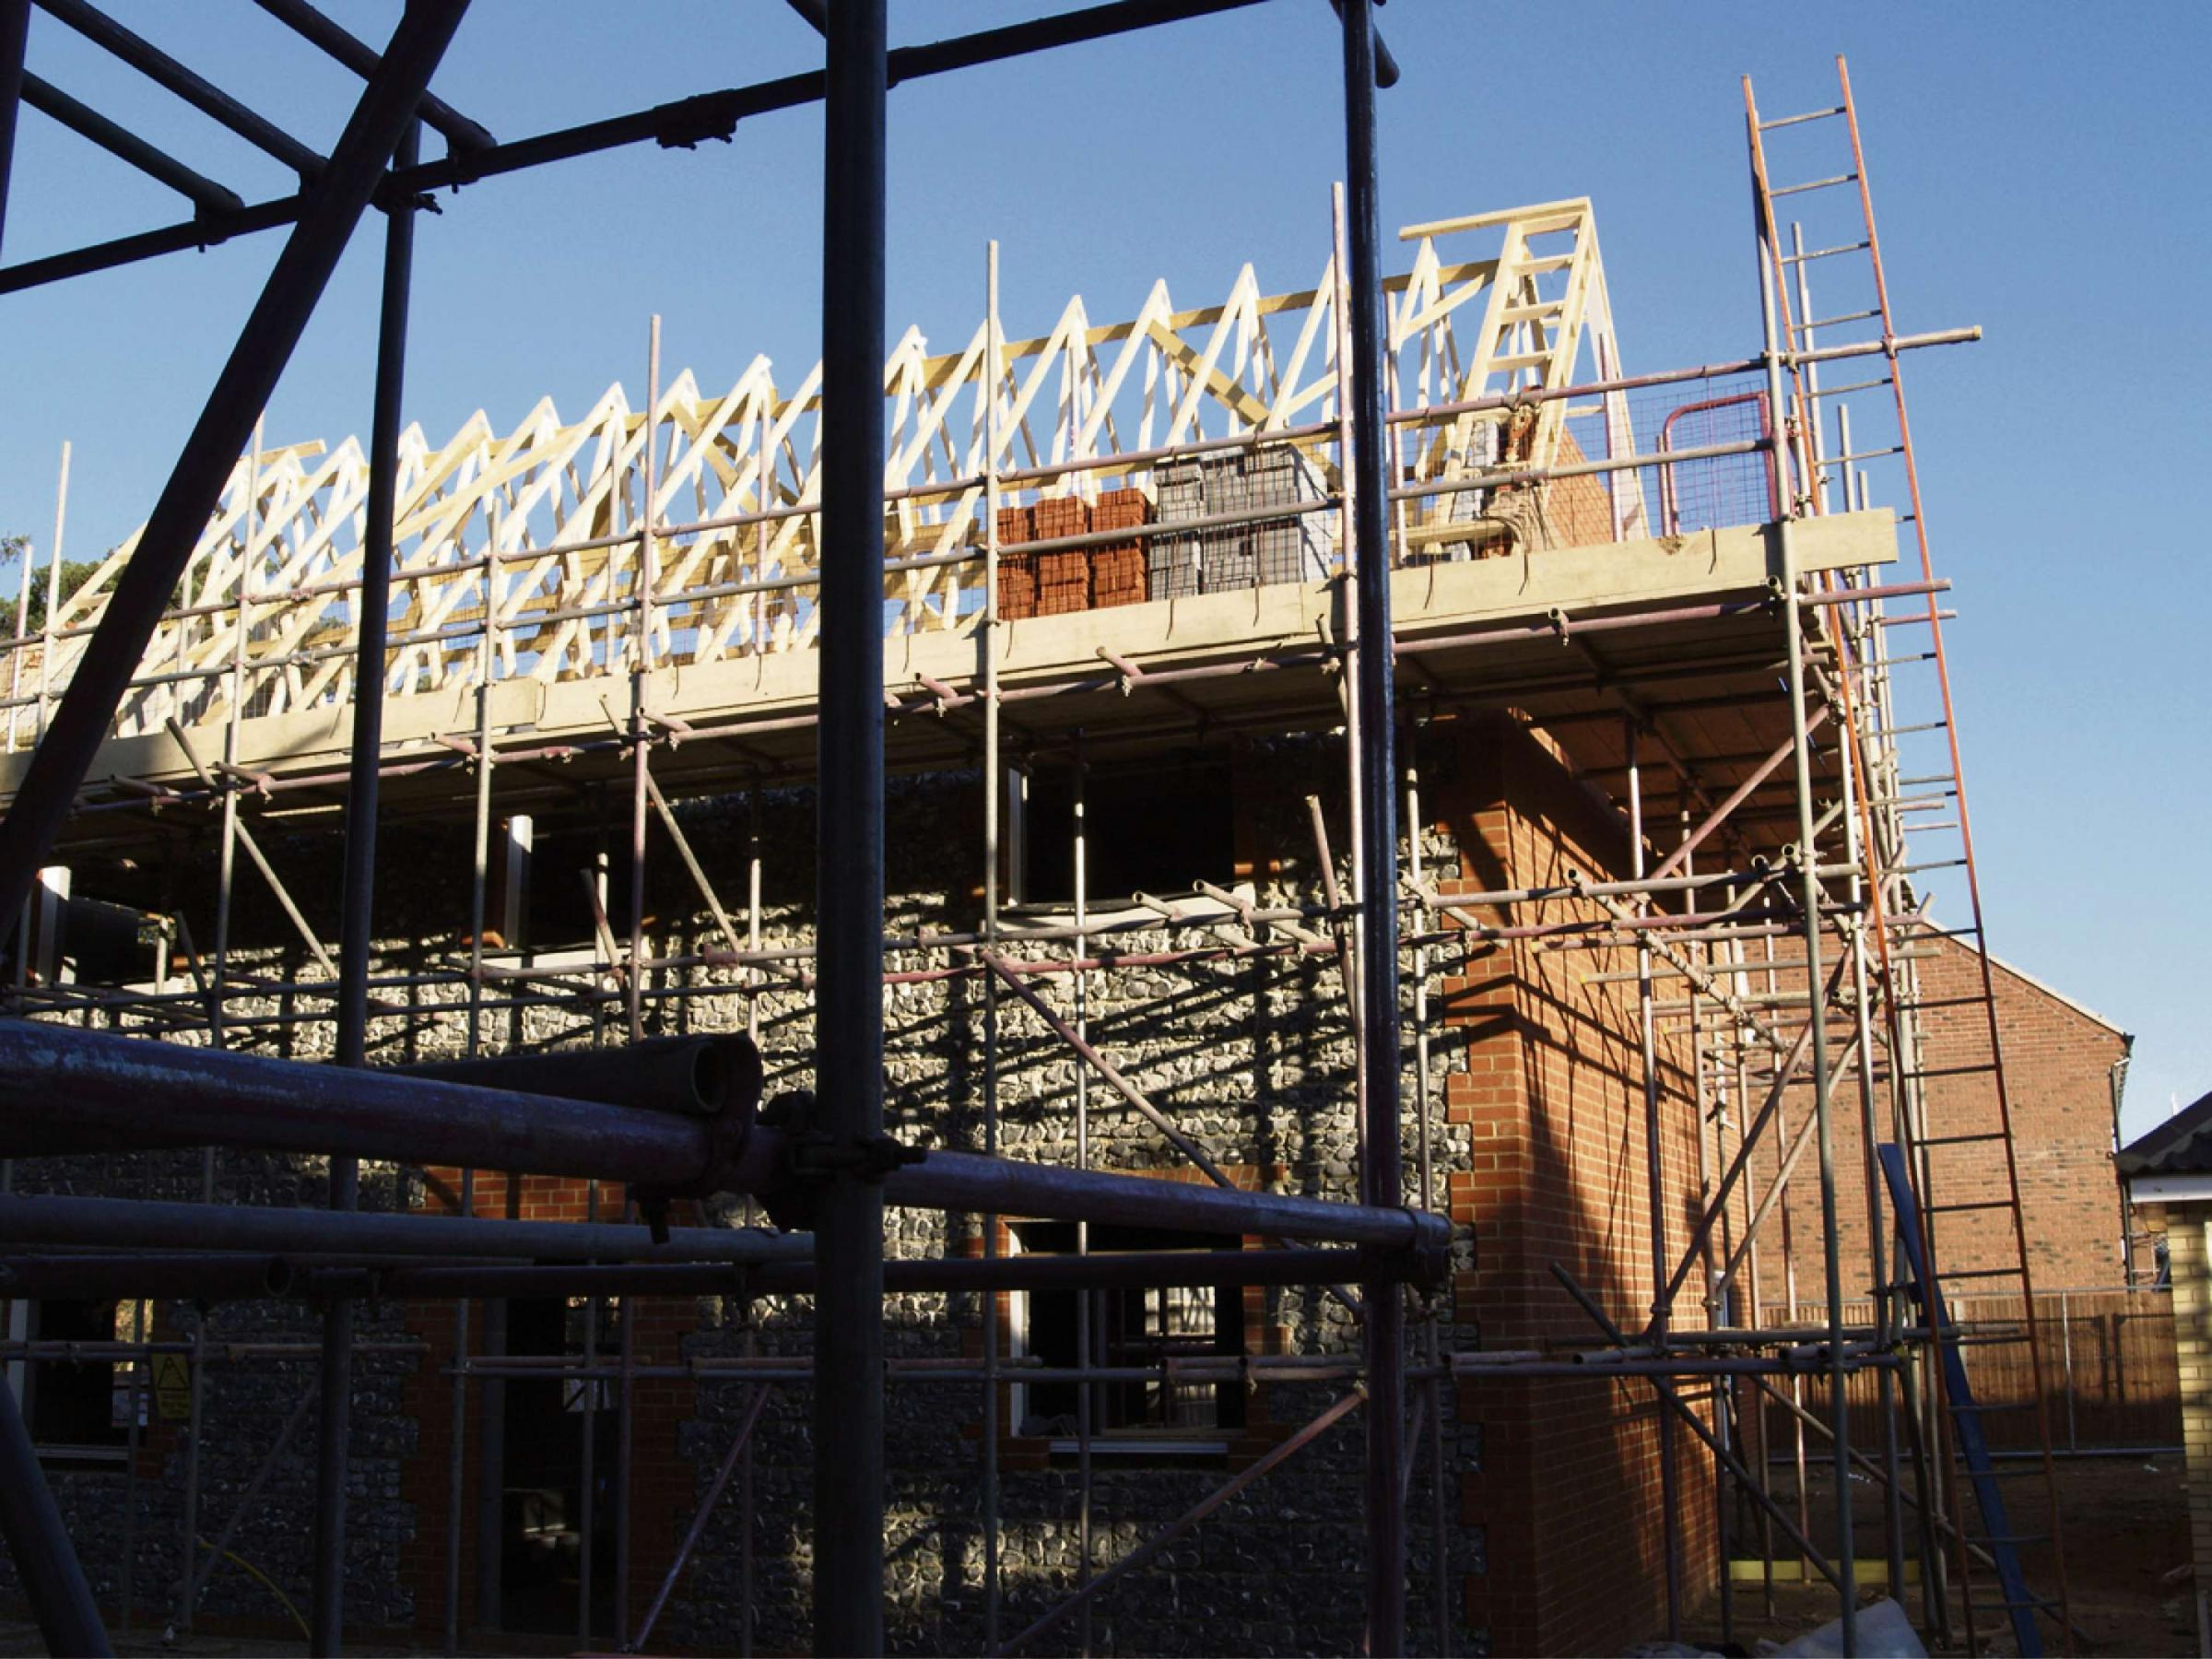 Up to 114 houses could be built in Lea if planning applications are approved.